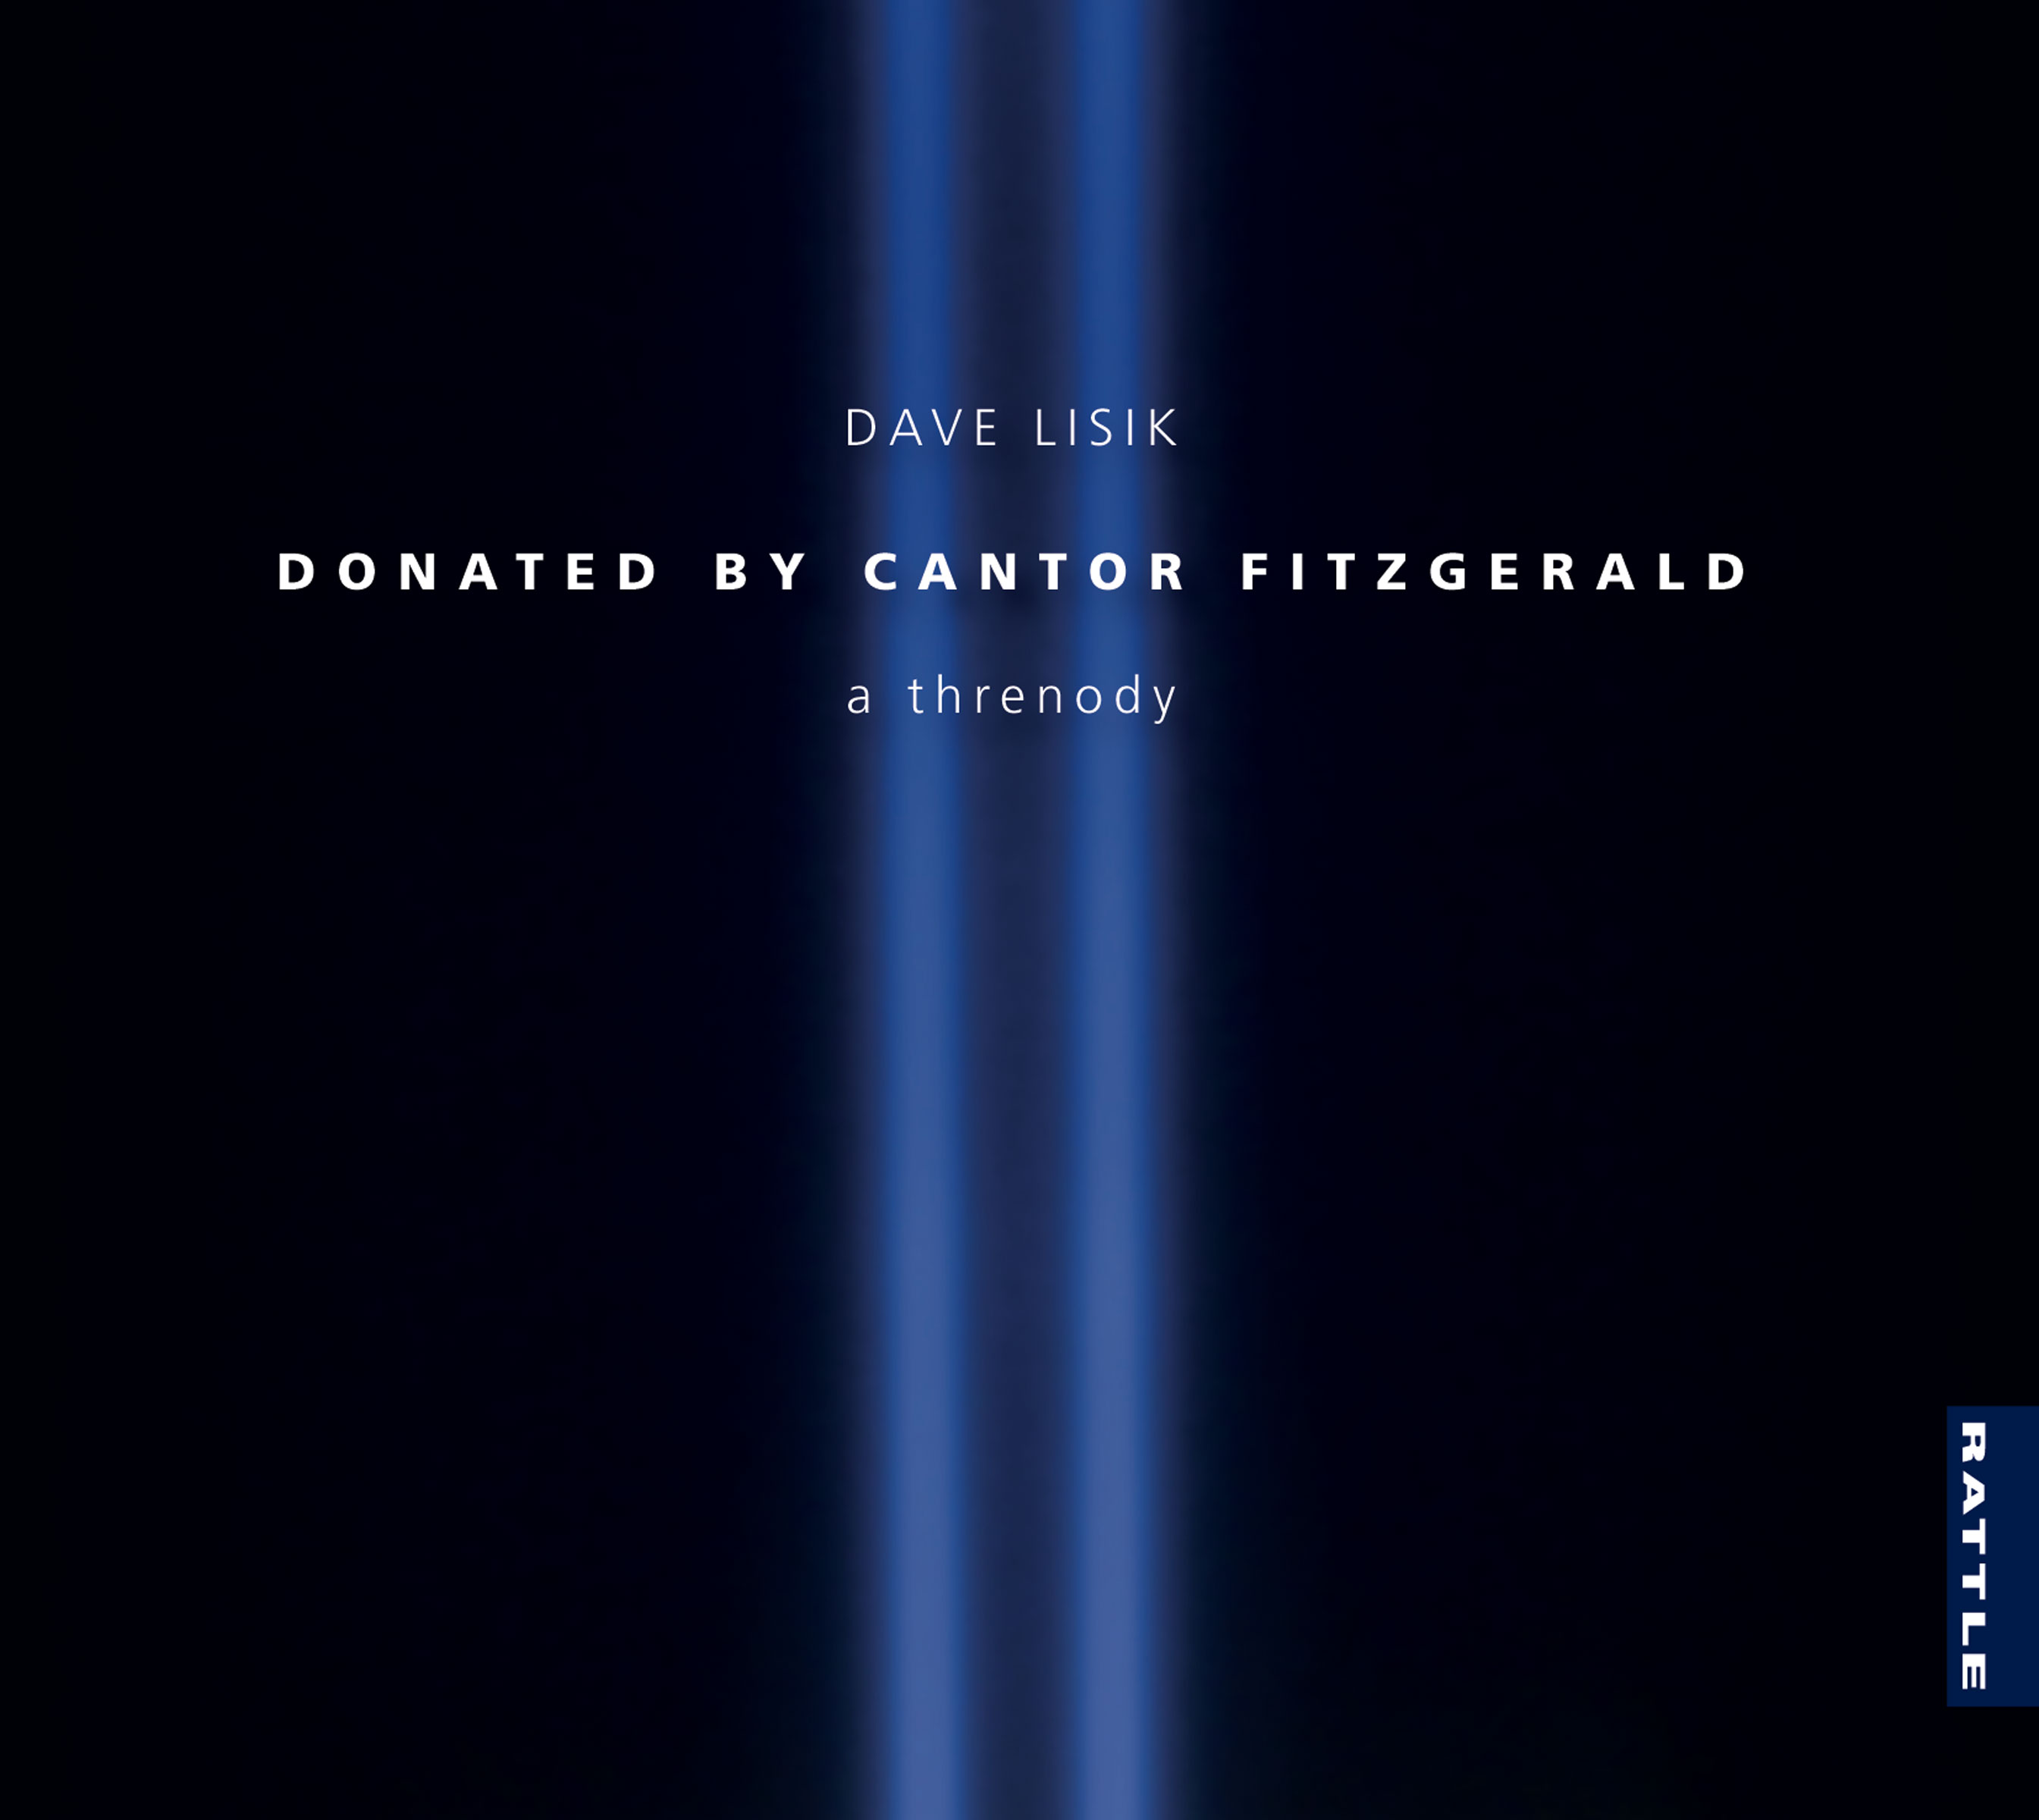 Dave Lisik | Donated by Cantor Fitzgerald - downloadable MP3 ALBUM